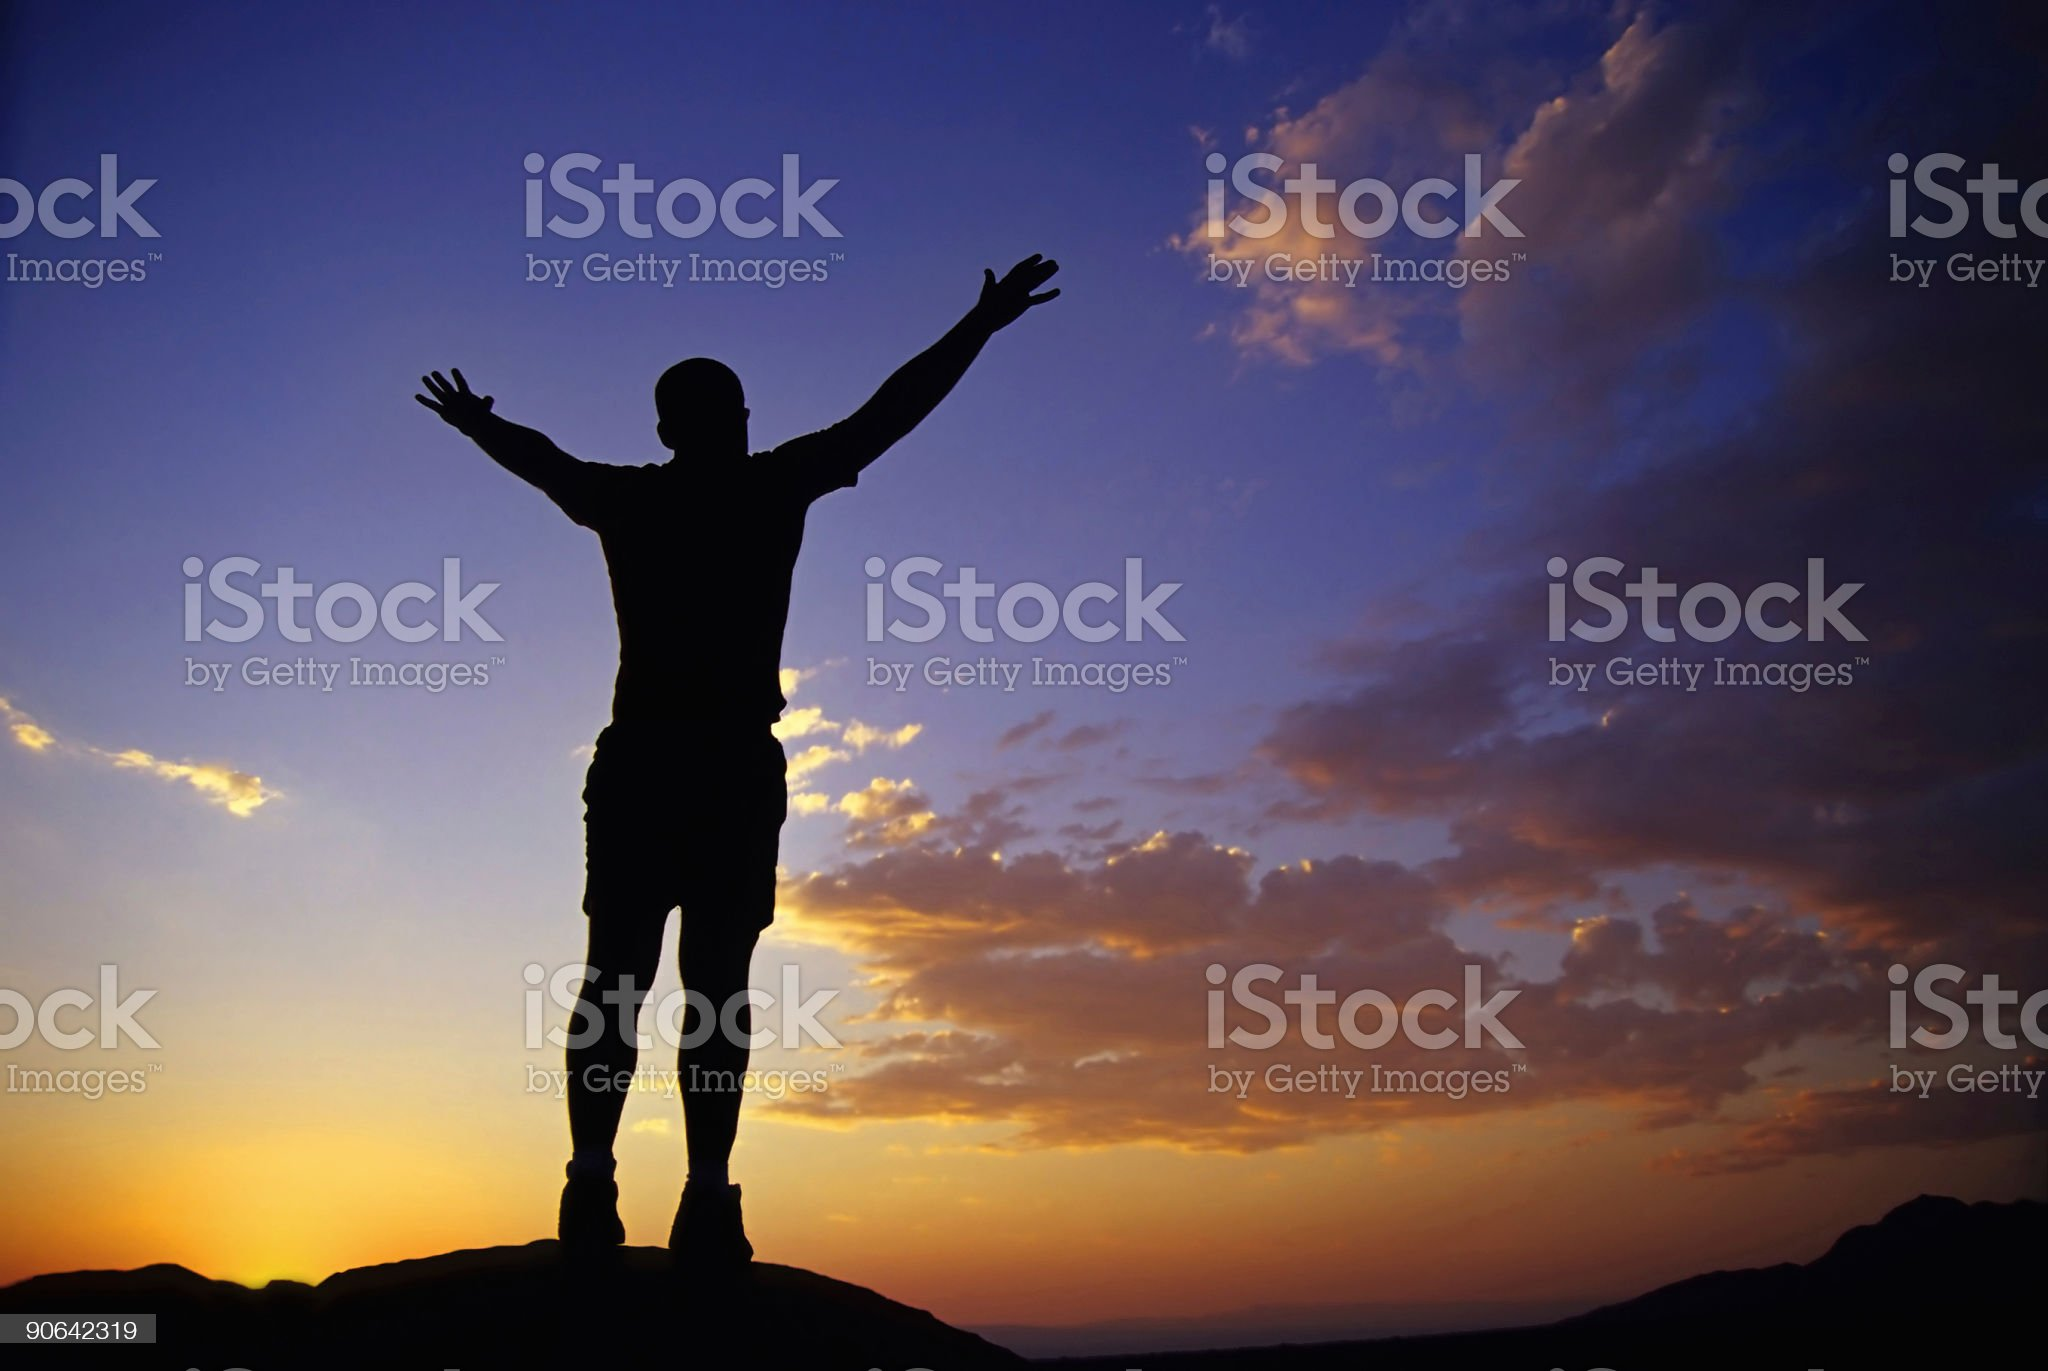 silhouette man with arms raised into sunset sky landscape royalty-free stock photo